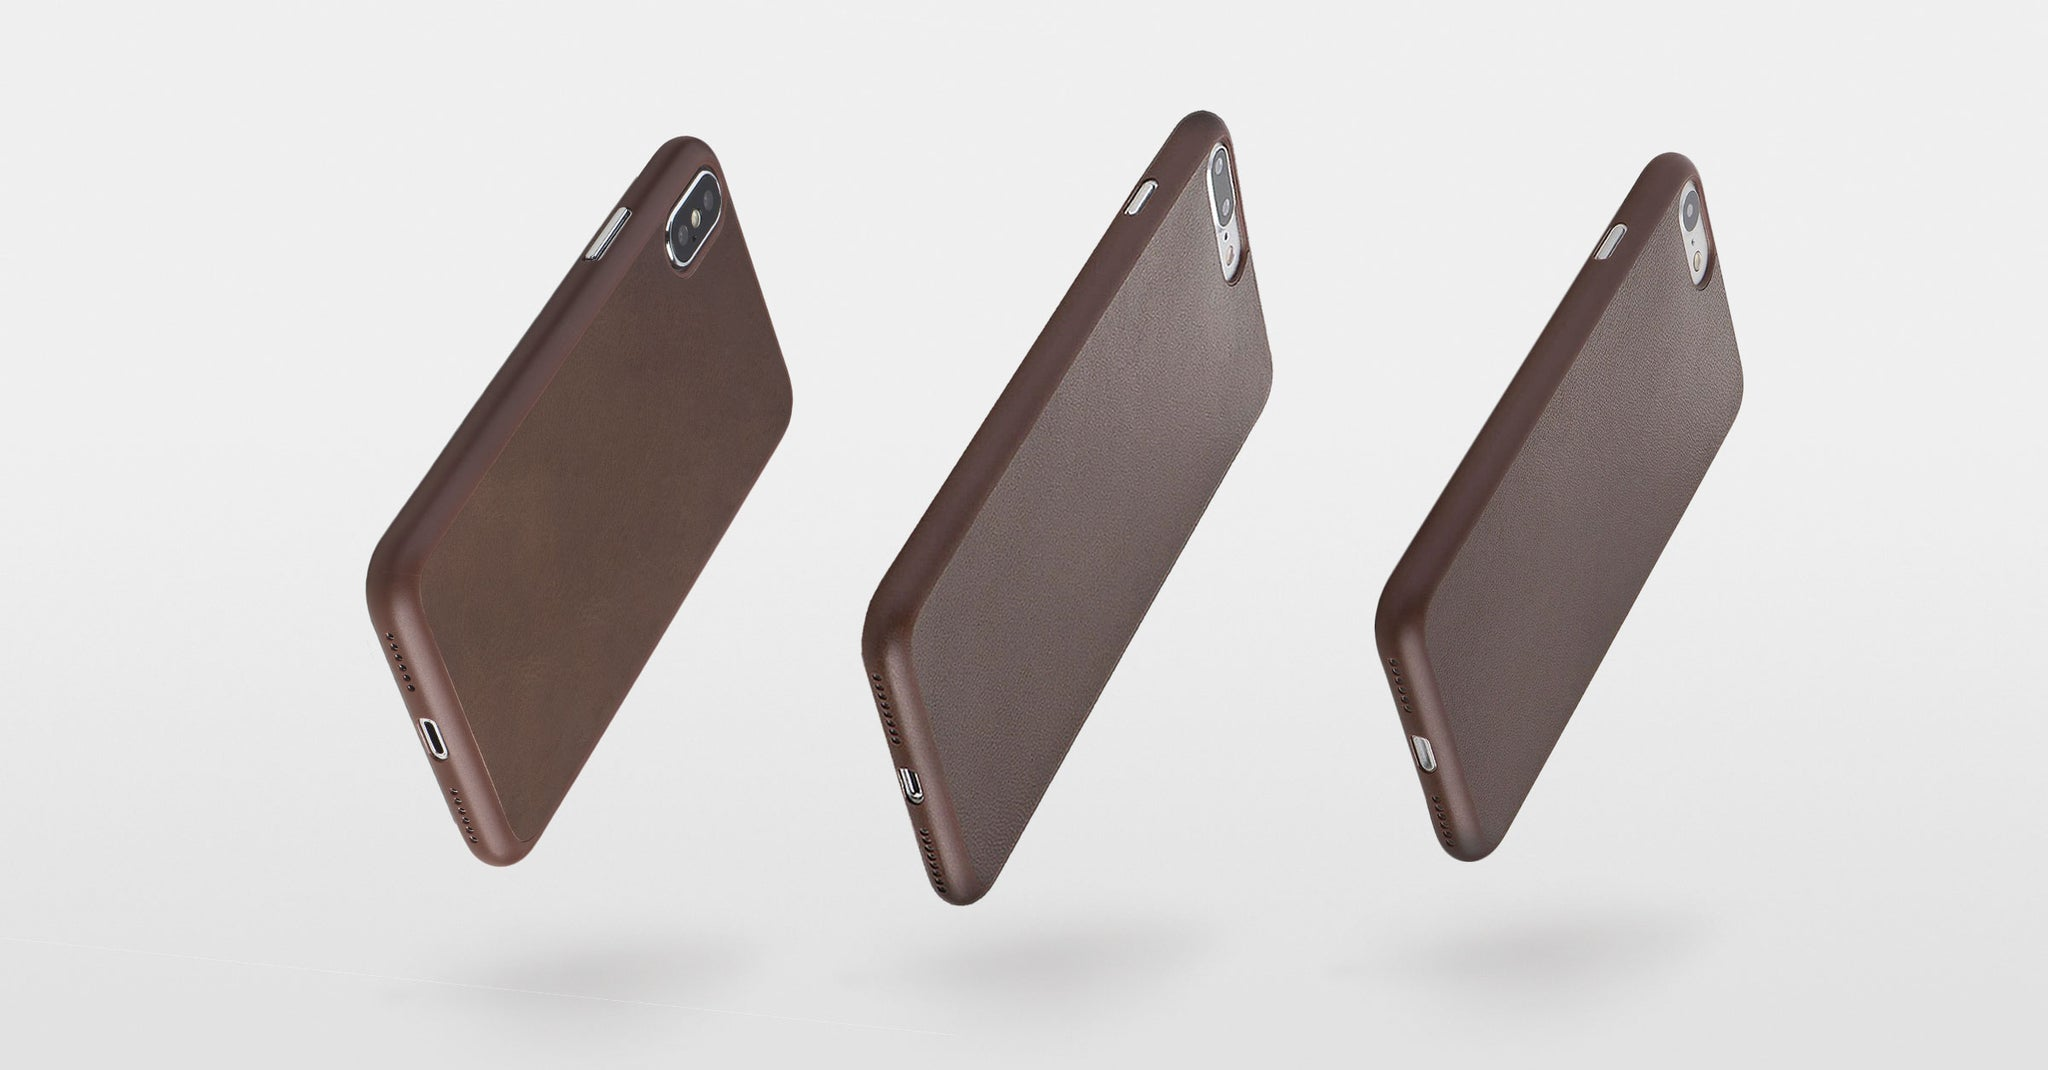 mocha leather iPhone cases